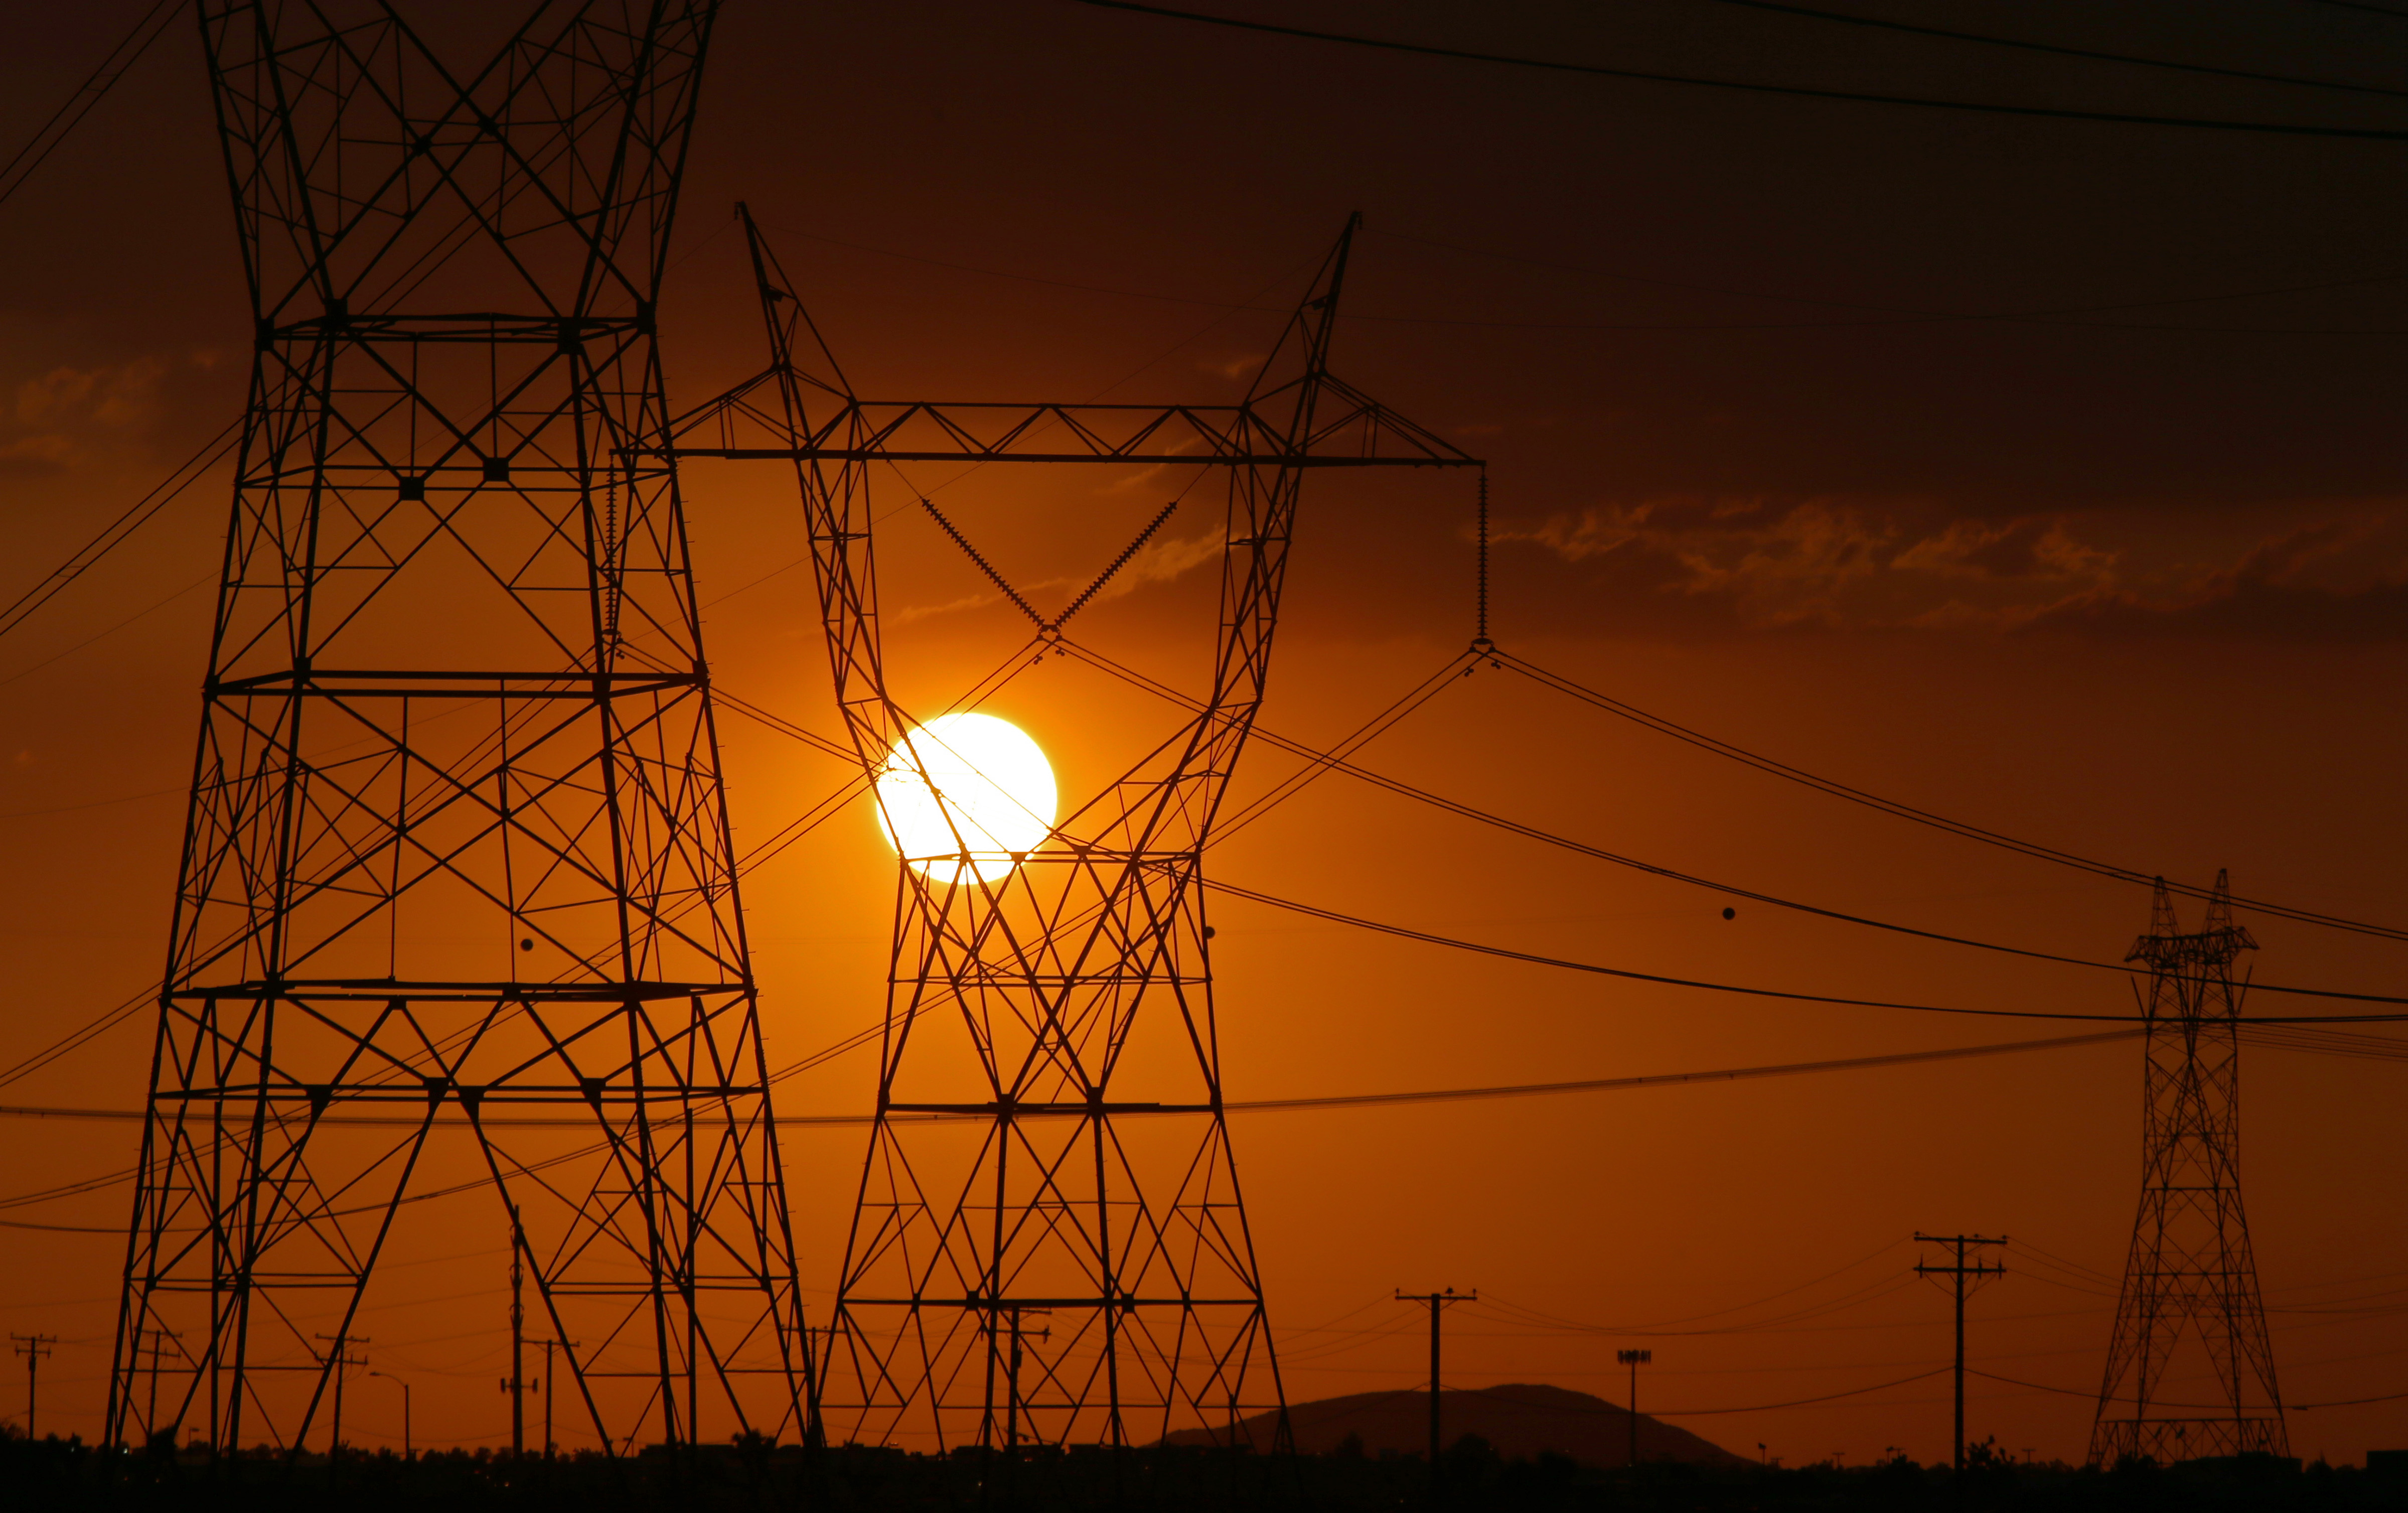 Newsom issues emergency proclamation to free up extra sources of power